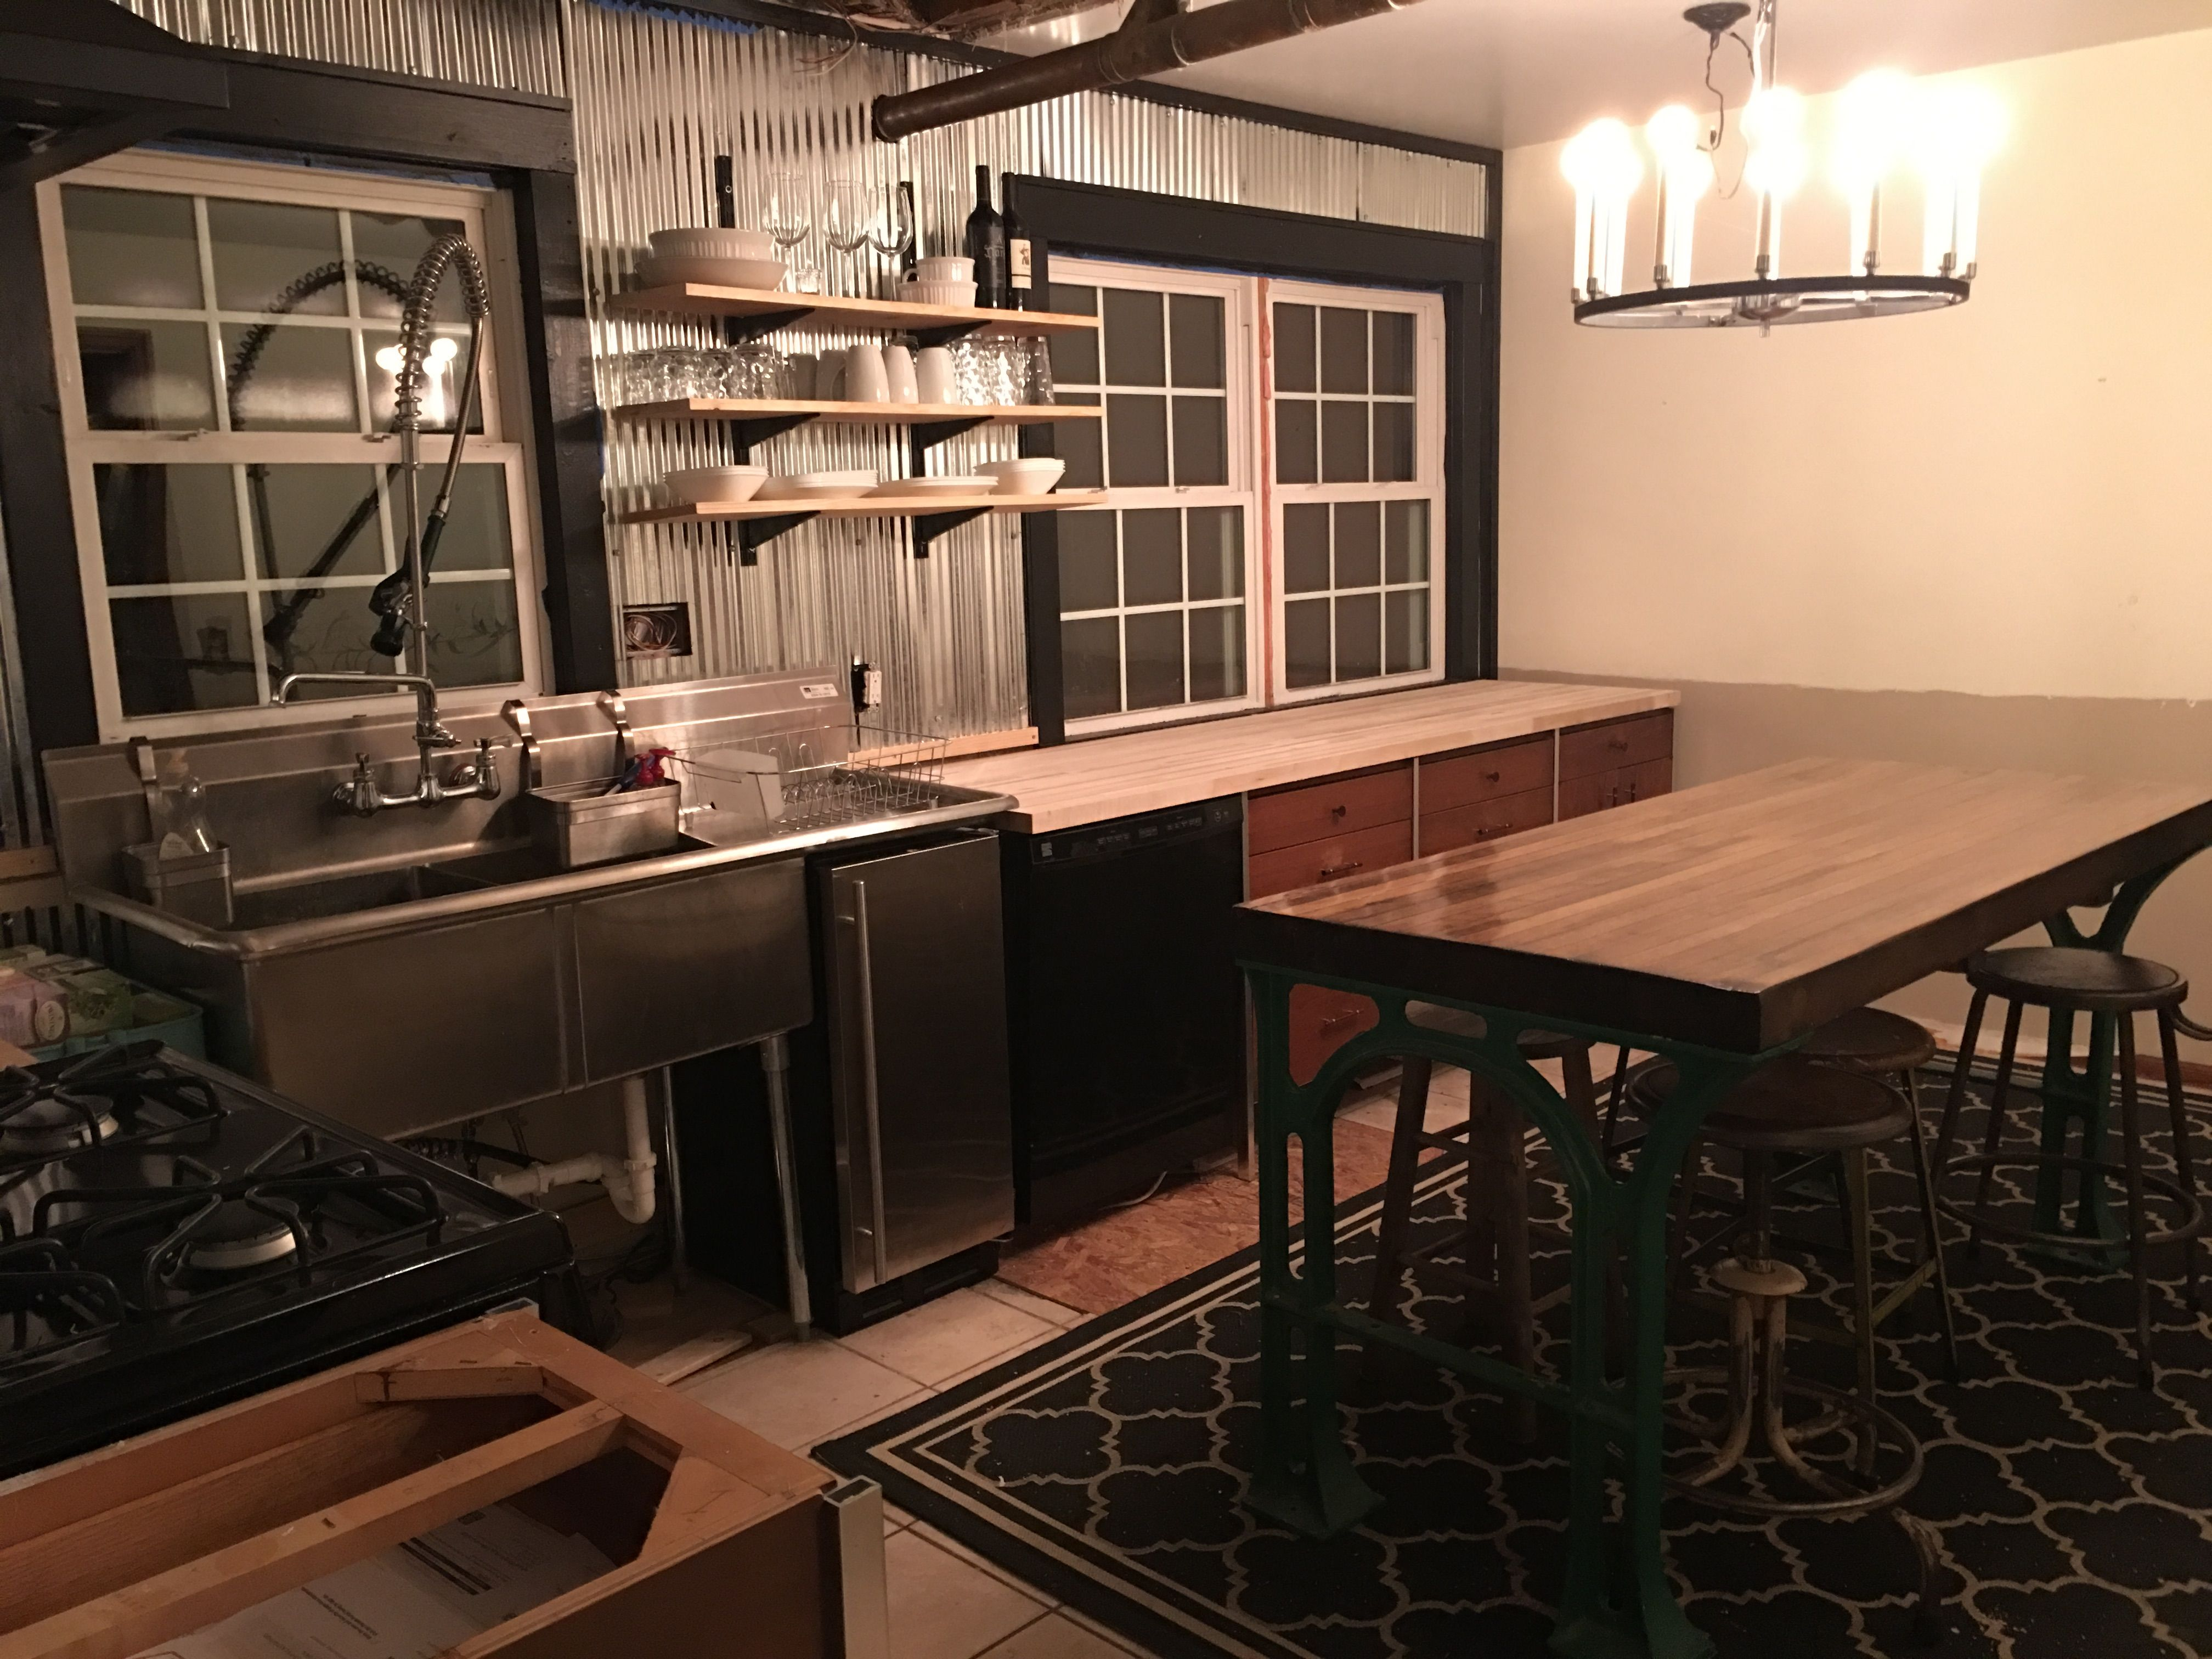 Diy kitchen remodel progress still a ways to go but itus functional